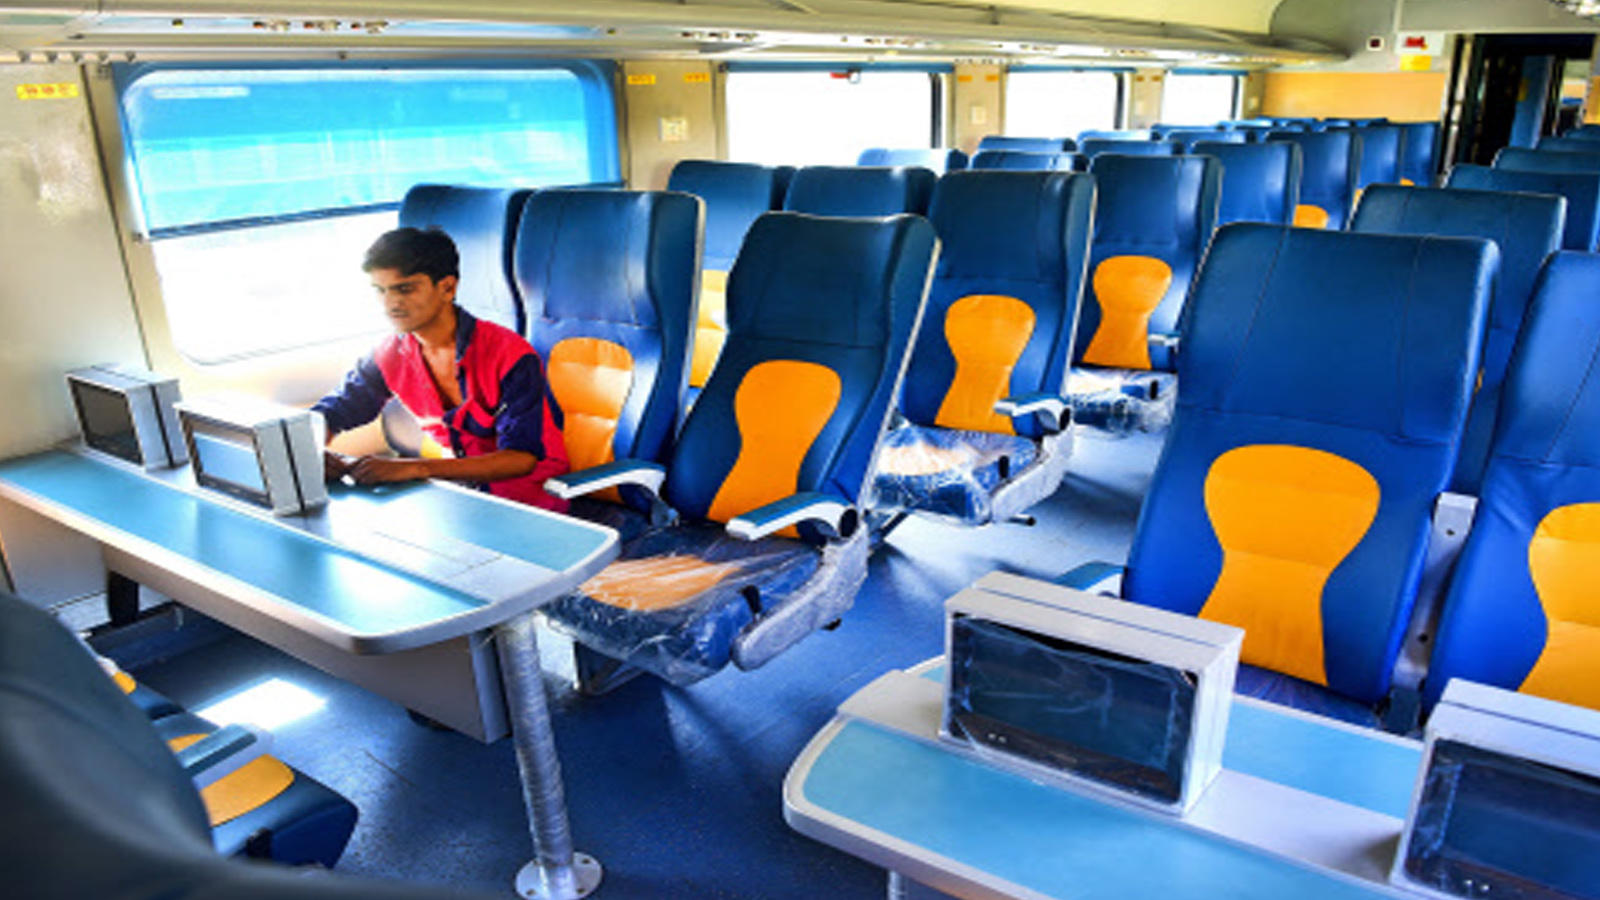 passengers-to-pay-for-preferred-seats-in-private-trains-gross-revenue-to-be-shared-with-railways